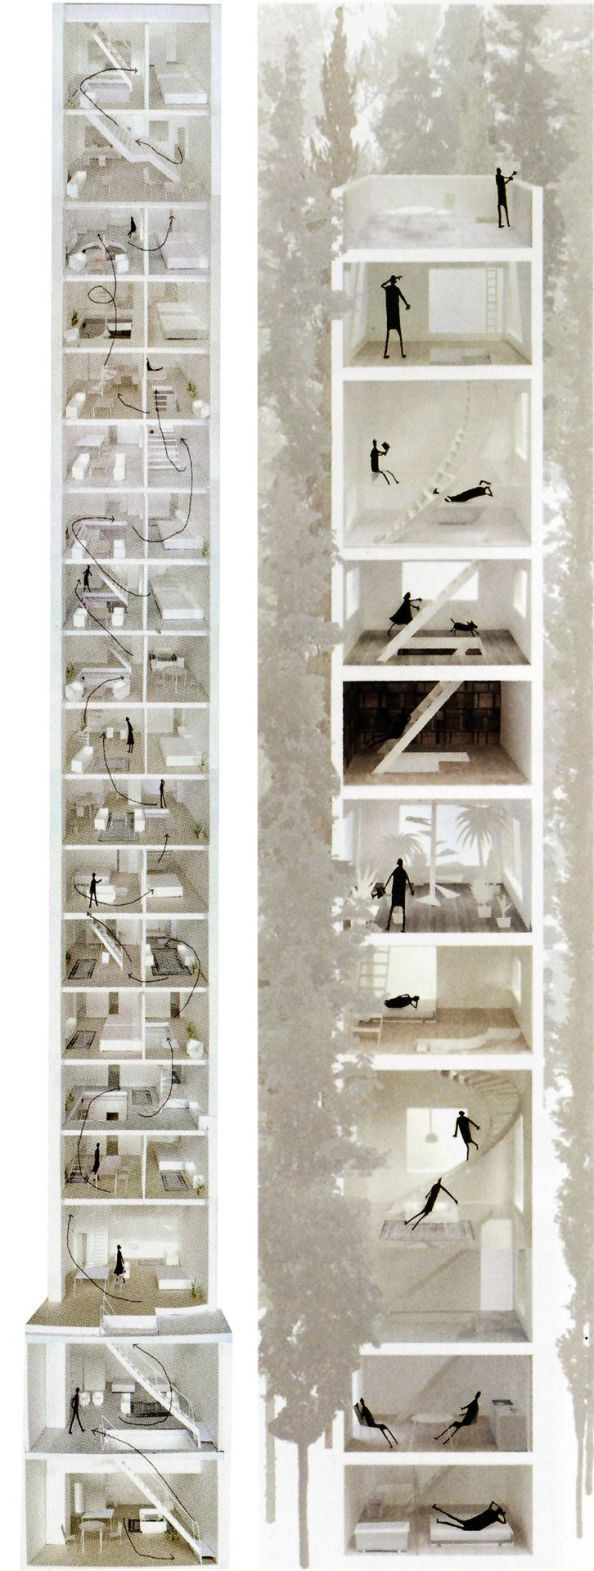 ishigami 2 maquettes marre et croquis. Black Bedroom Furniture Sets. Home Design Ideas